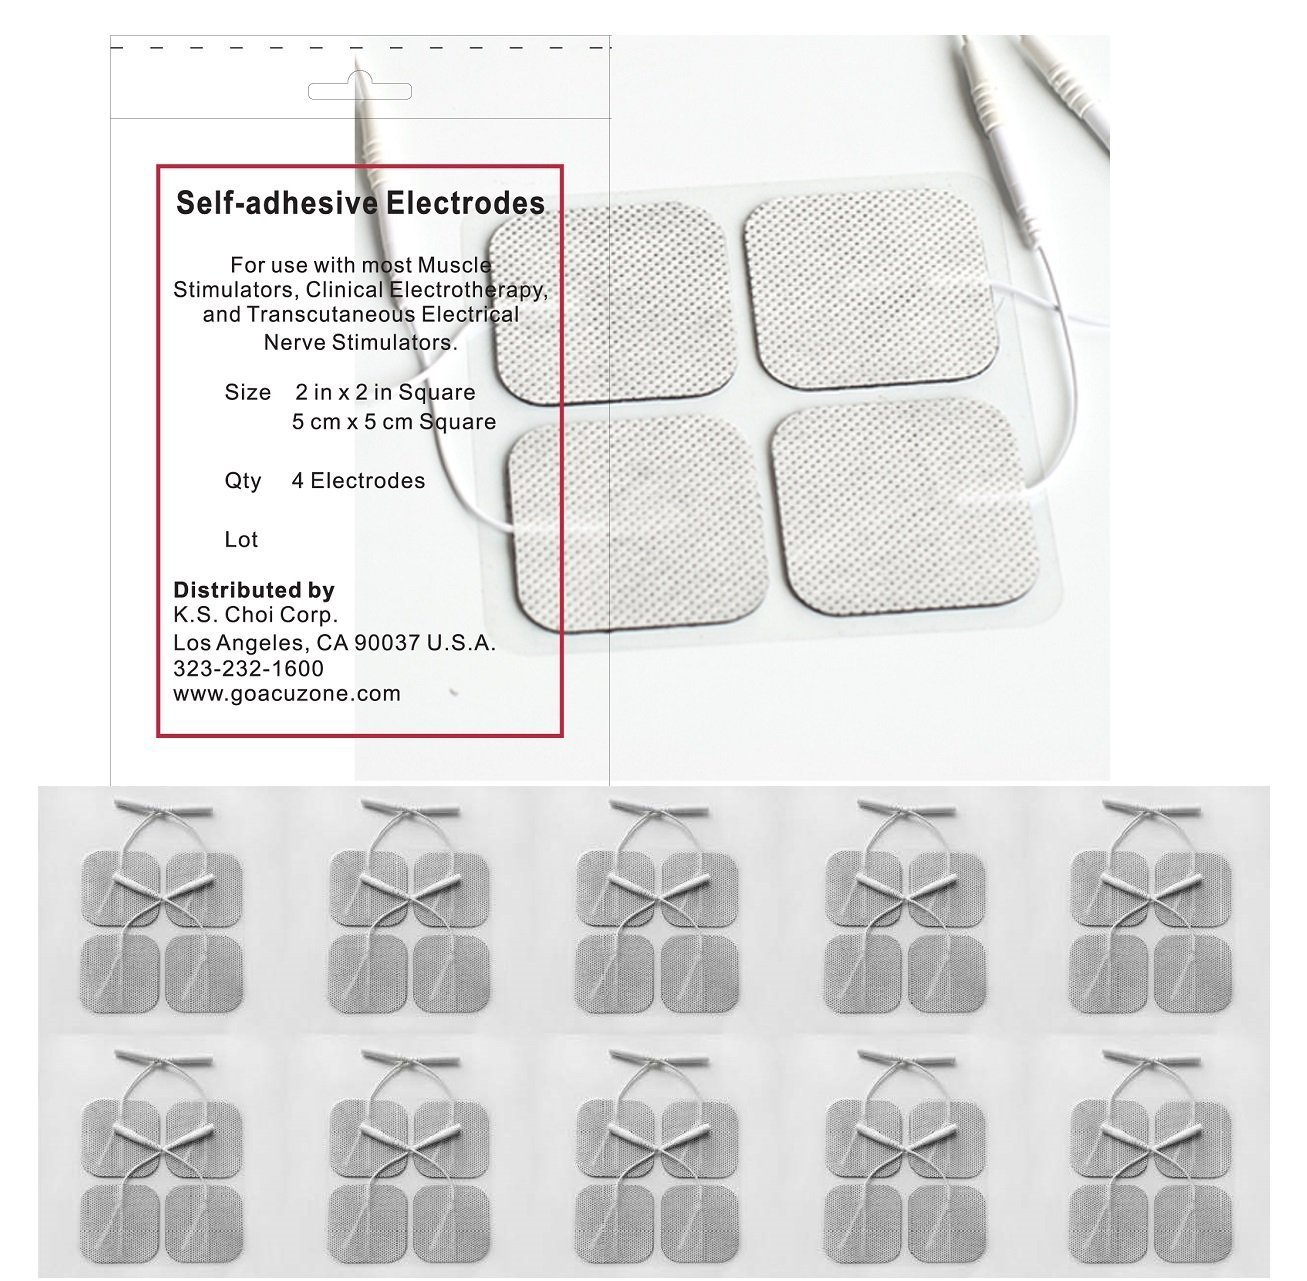 "Angel Premium TENS/EMS Unit 40 Electrode Pads 2""x2"" in. Reusable Self Stick Gel Carbon Electrodes"